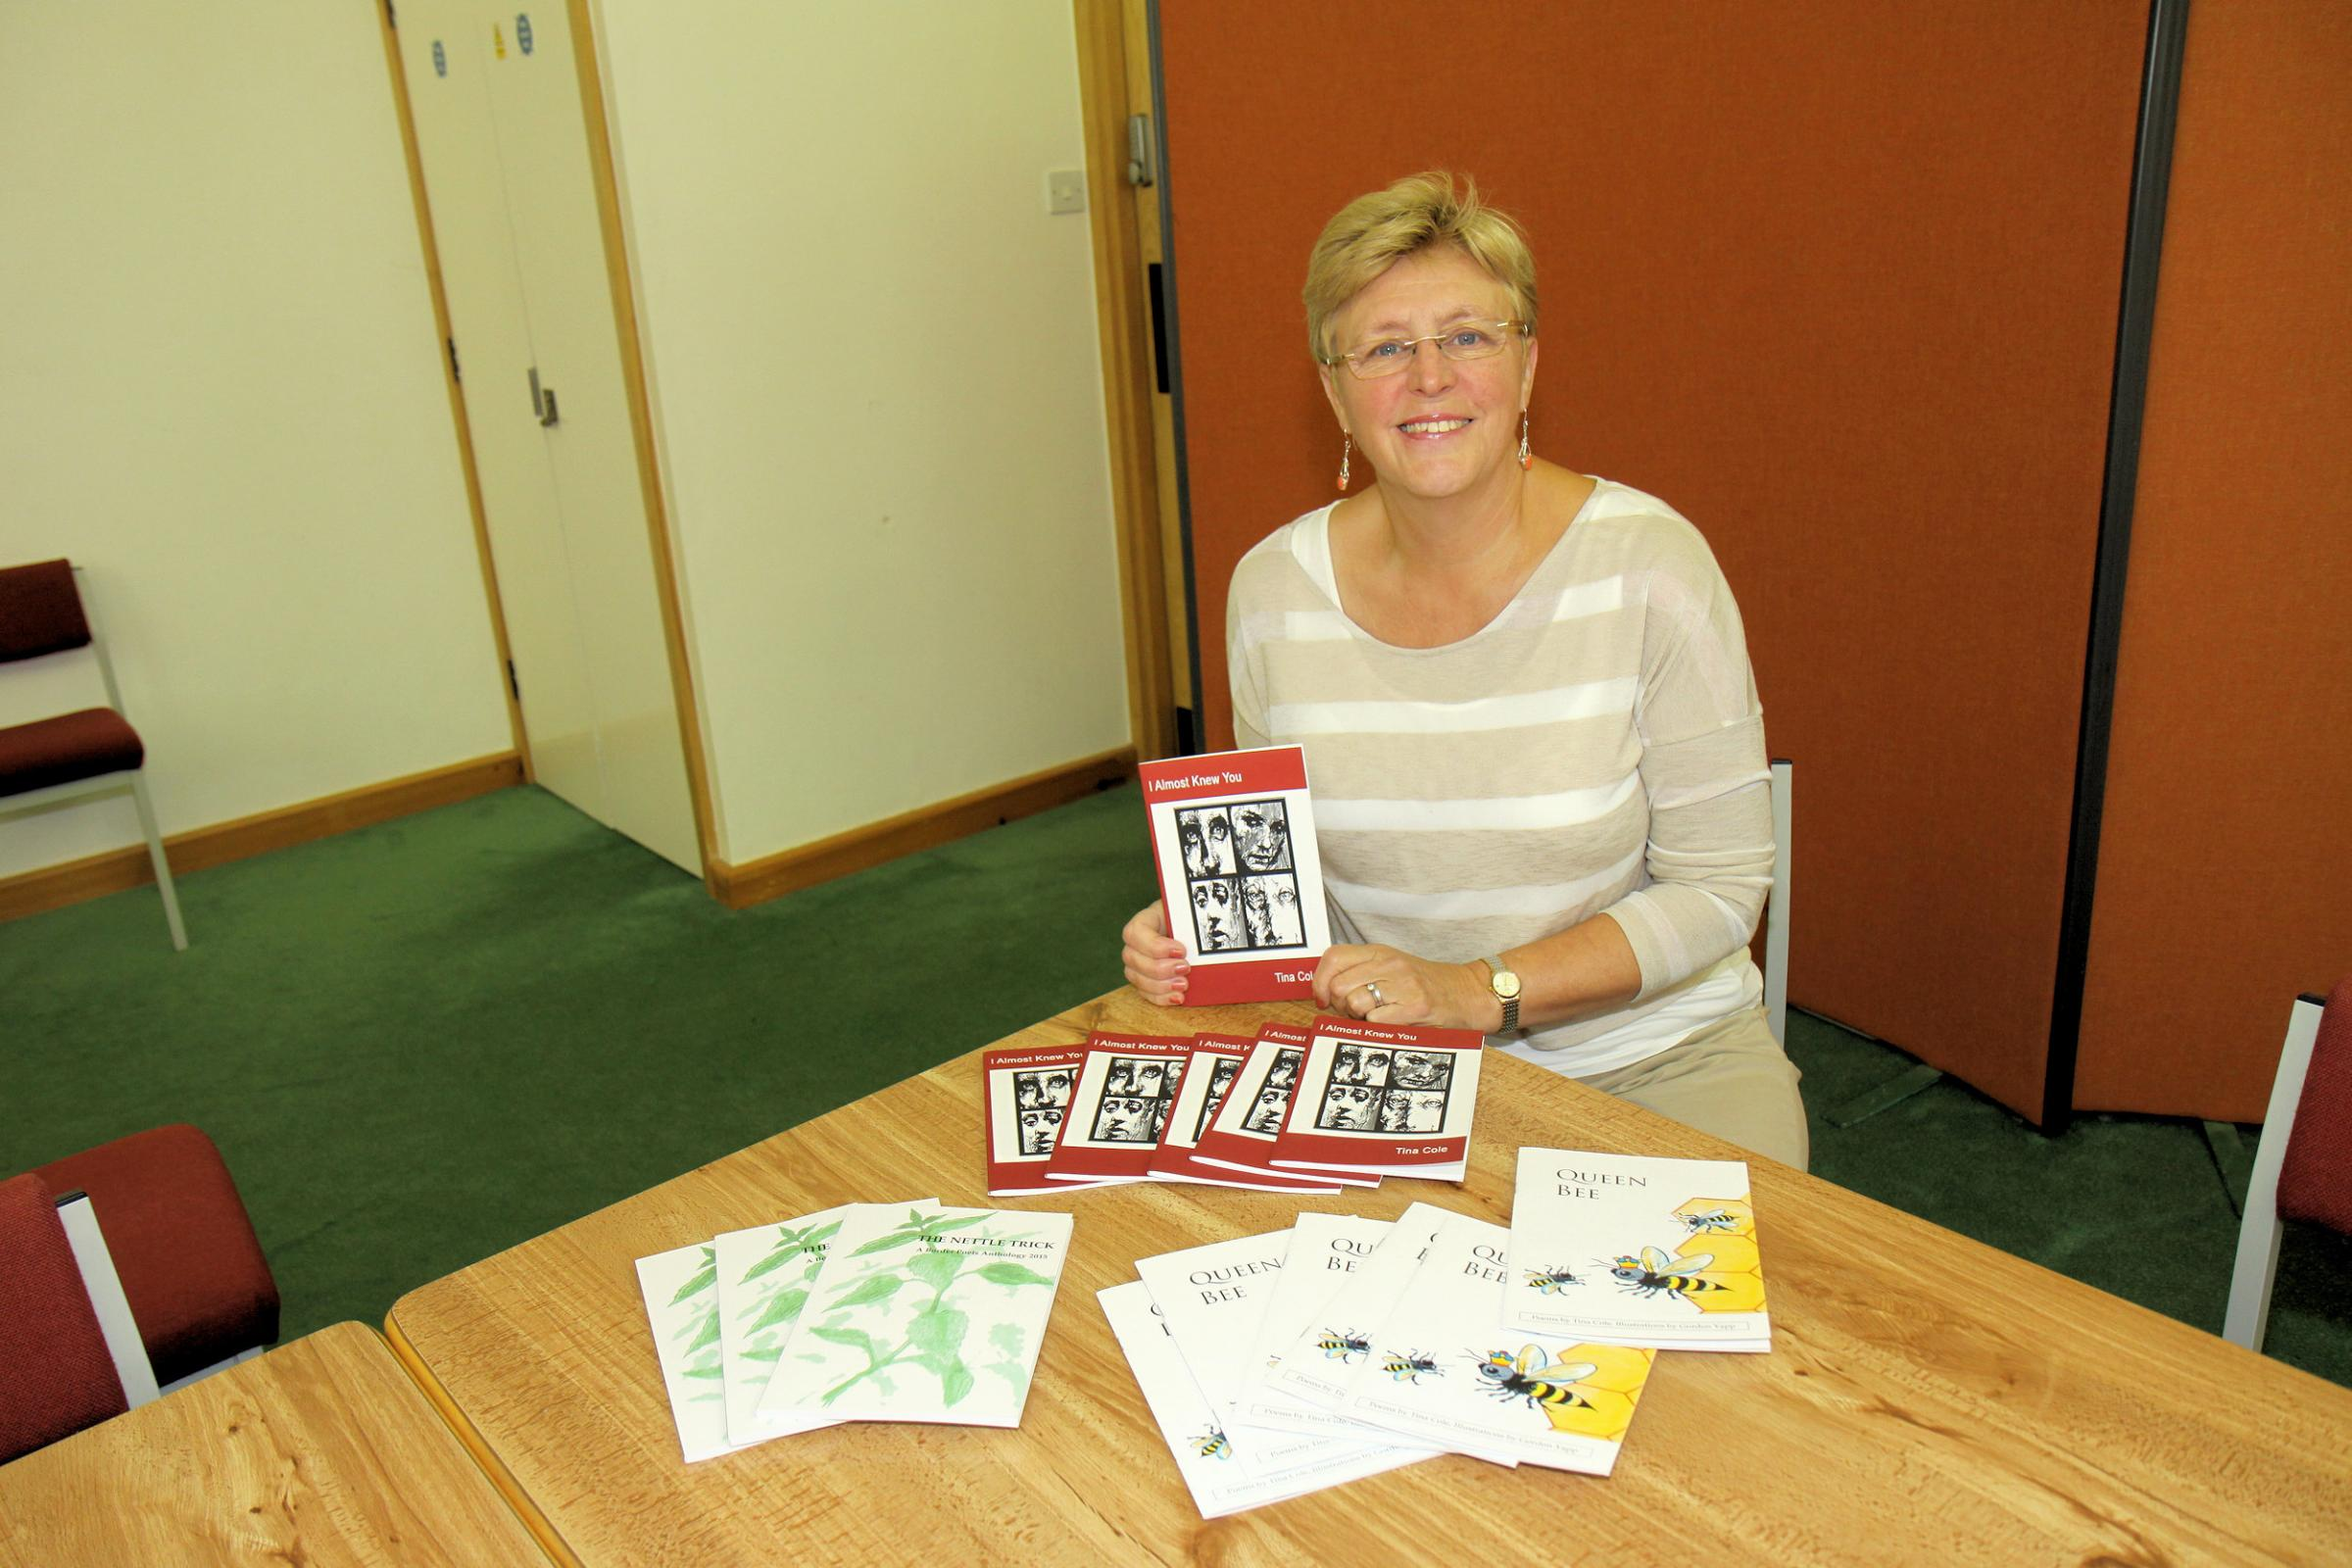 Poet Tina Cole with her book 'I almost knew you.'.